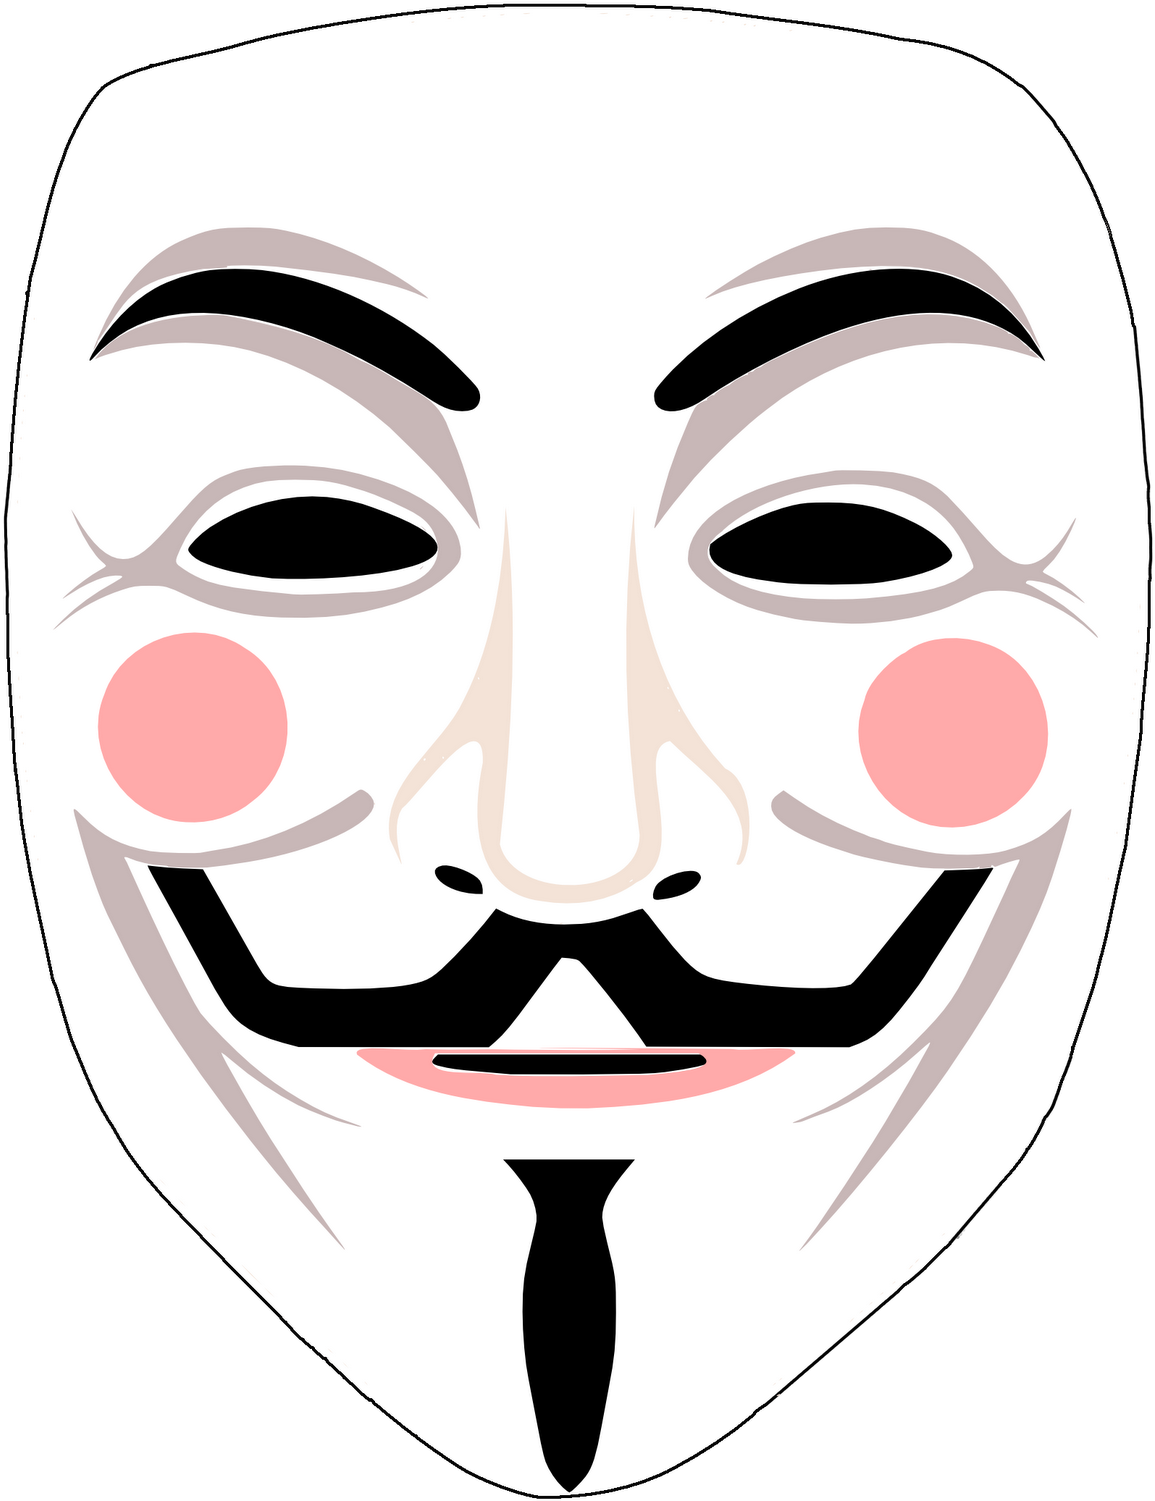 Related Wallpapers Guy Fawkes Mask Transparent Clipart Large